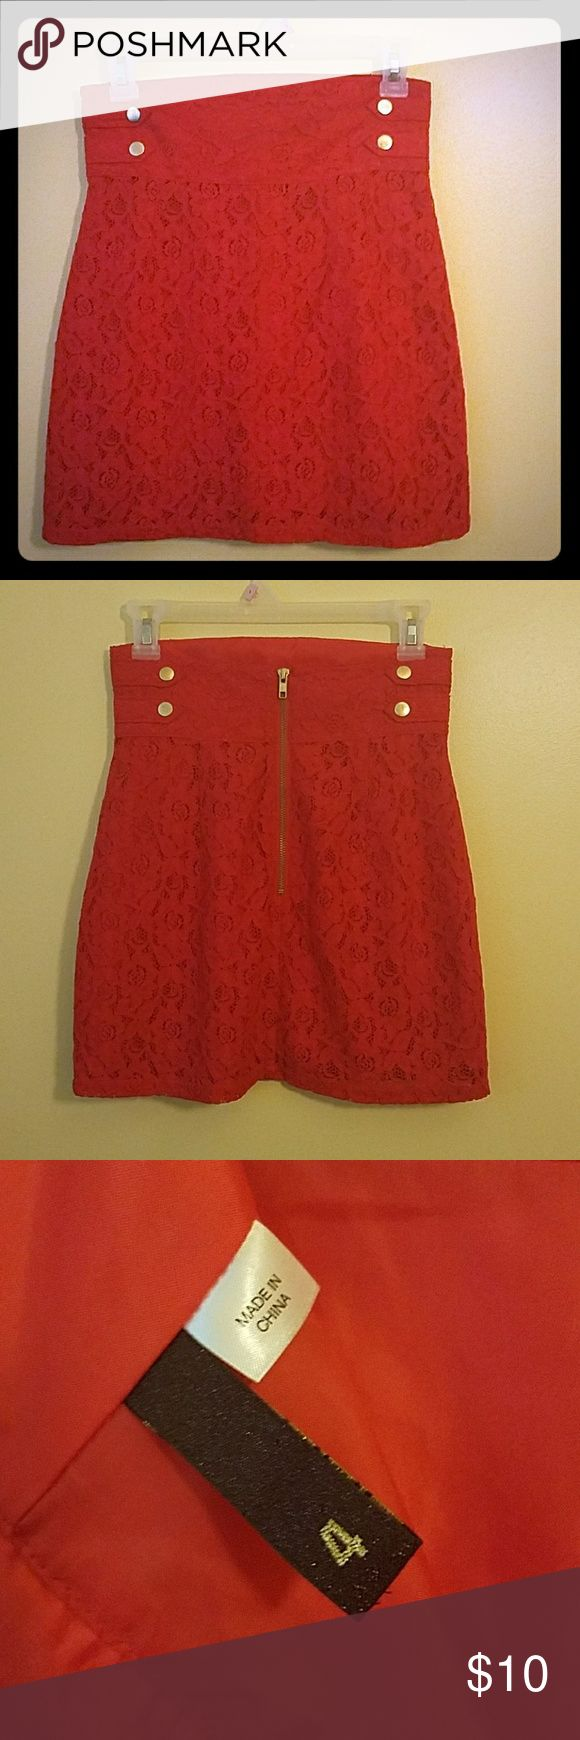 EUC DIVIDED BY H&M WOMEN'S RED LACE SKIRT SIZE 4 EUC DIVIDED BY H&M WOMEN'S SEXY RED LACE SKIRT SIZE 4, EMBELLISHED WITH GOLD BUTTONS ON THE SIDES OF THE SKIRT, GOLD ZIP UP BACK, SHELL-75% COTTON, 25% POLYAMIDE, LINING-100% POLYESTER Divided Skirts Midi